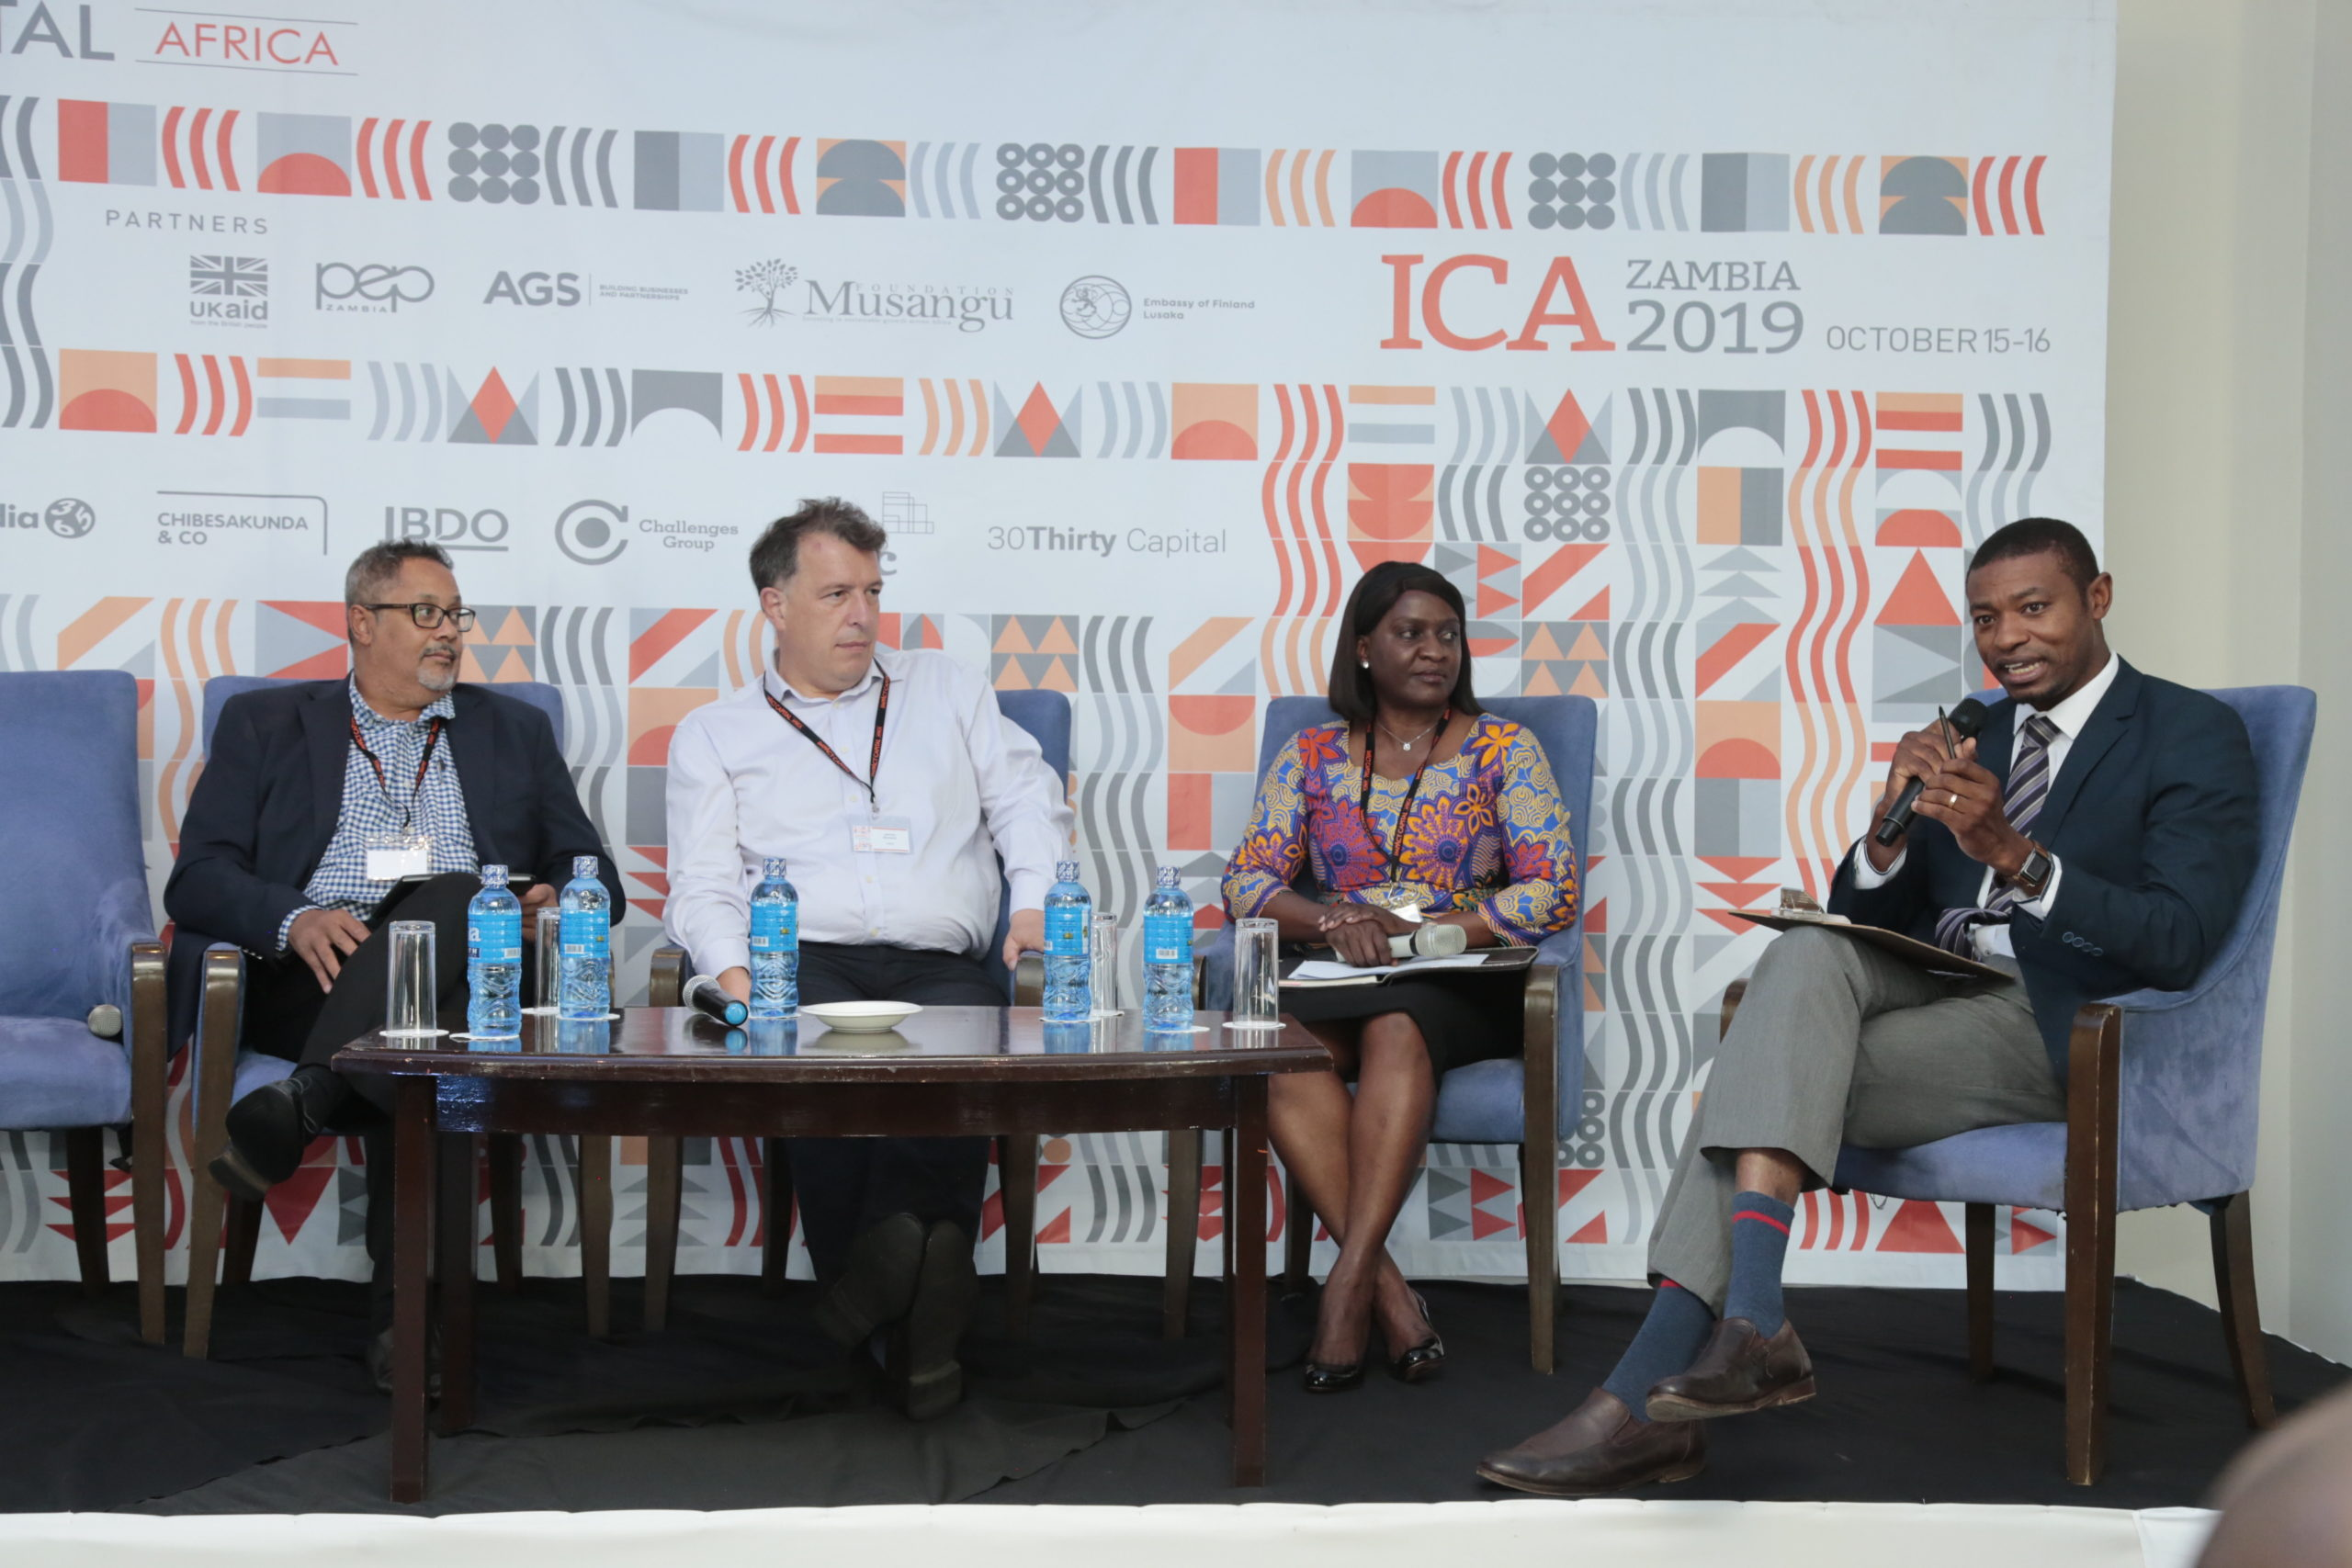 Panel discussion at ICA 2019